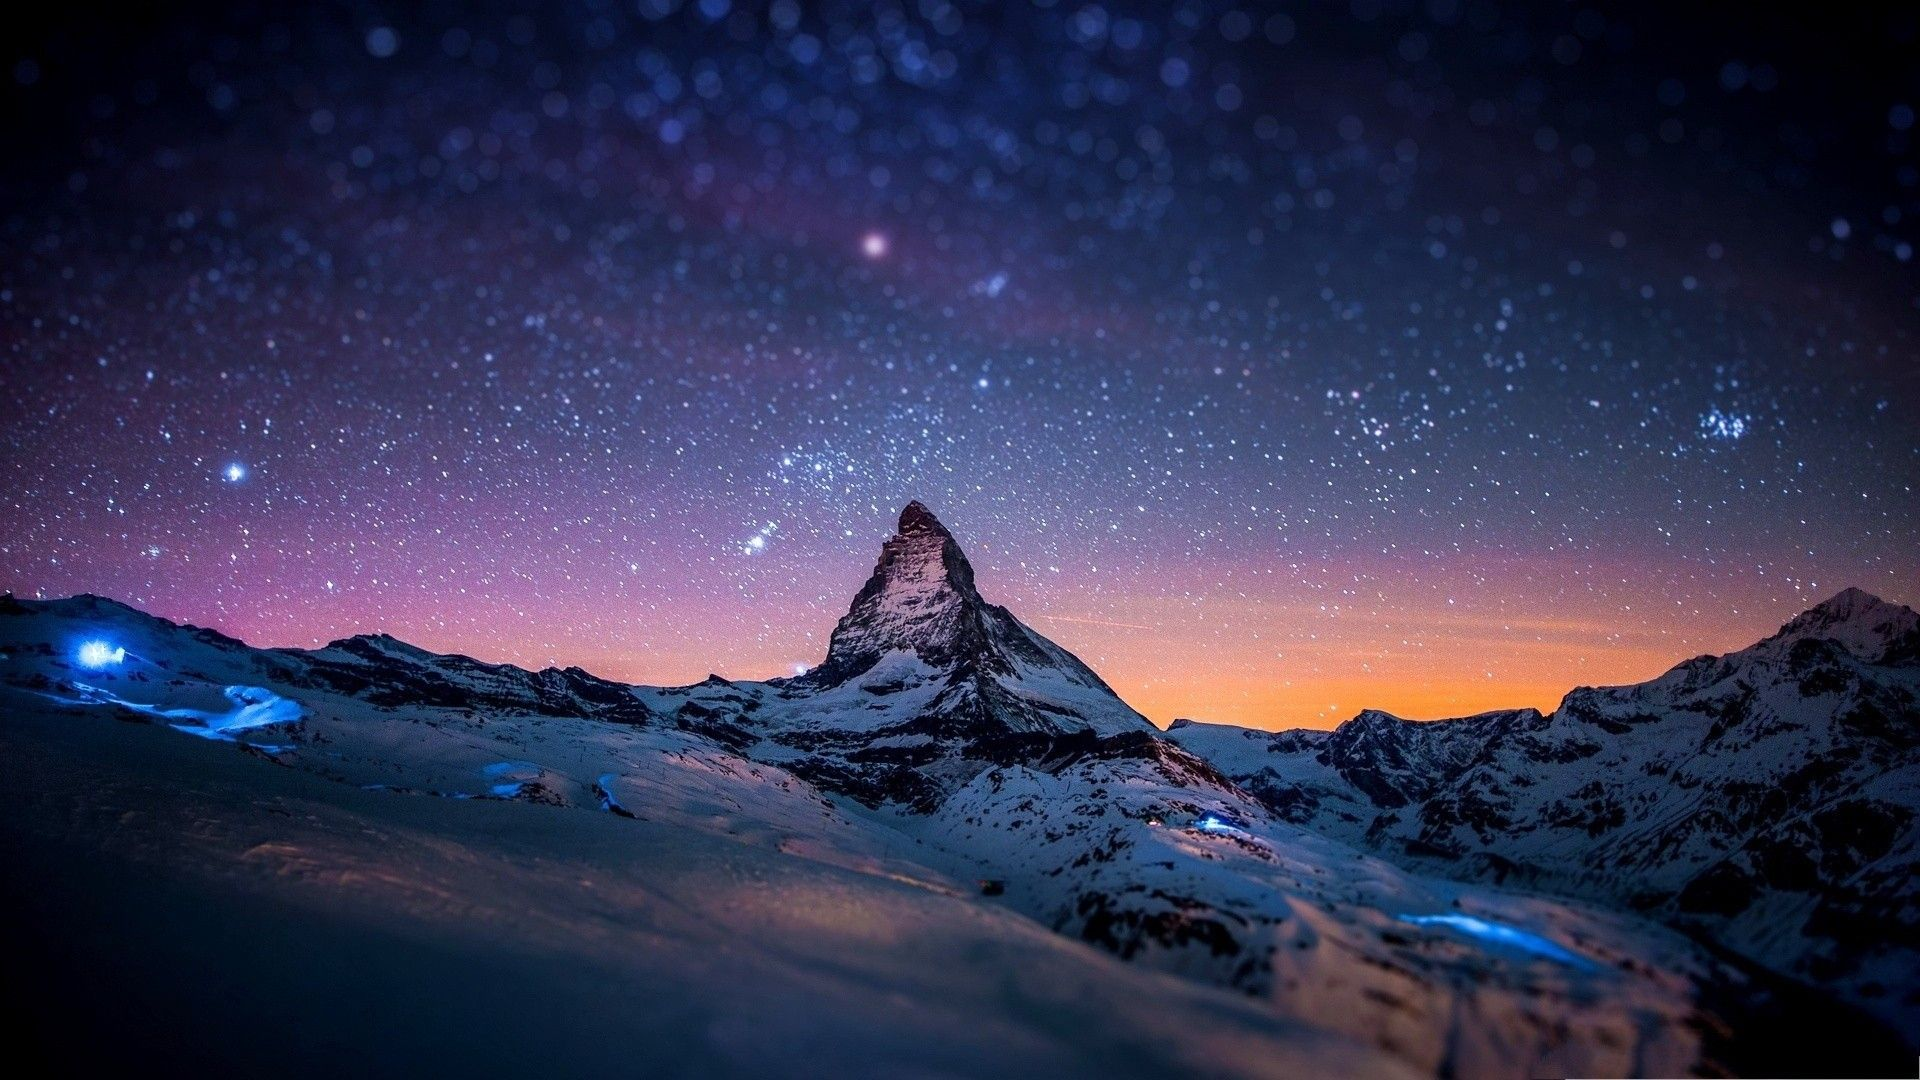 Winter Night Desktop Wallpapers Top Free Winter Night